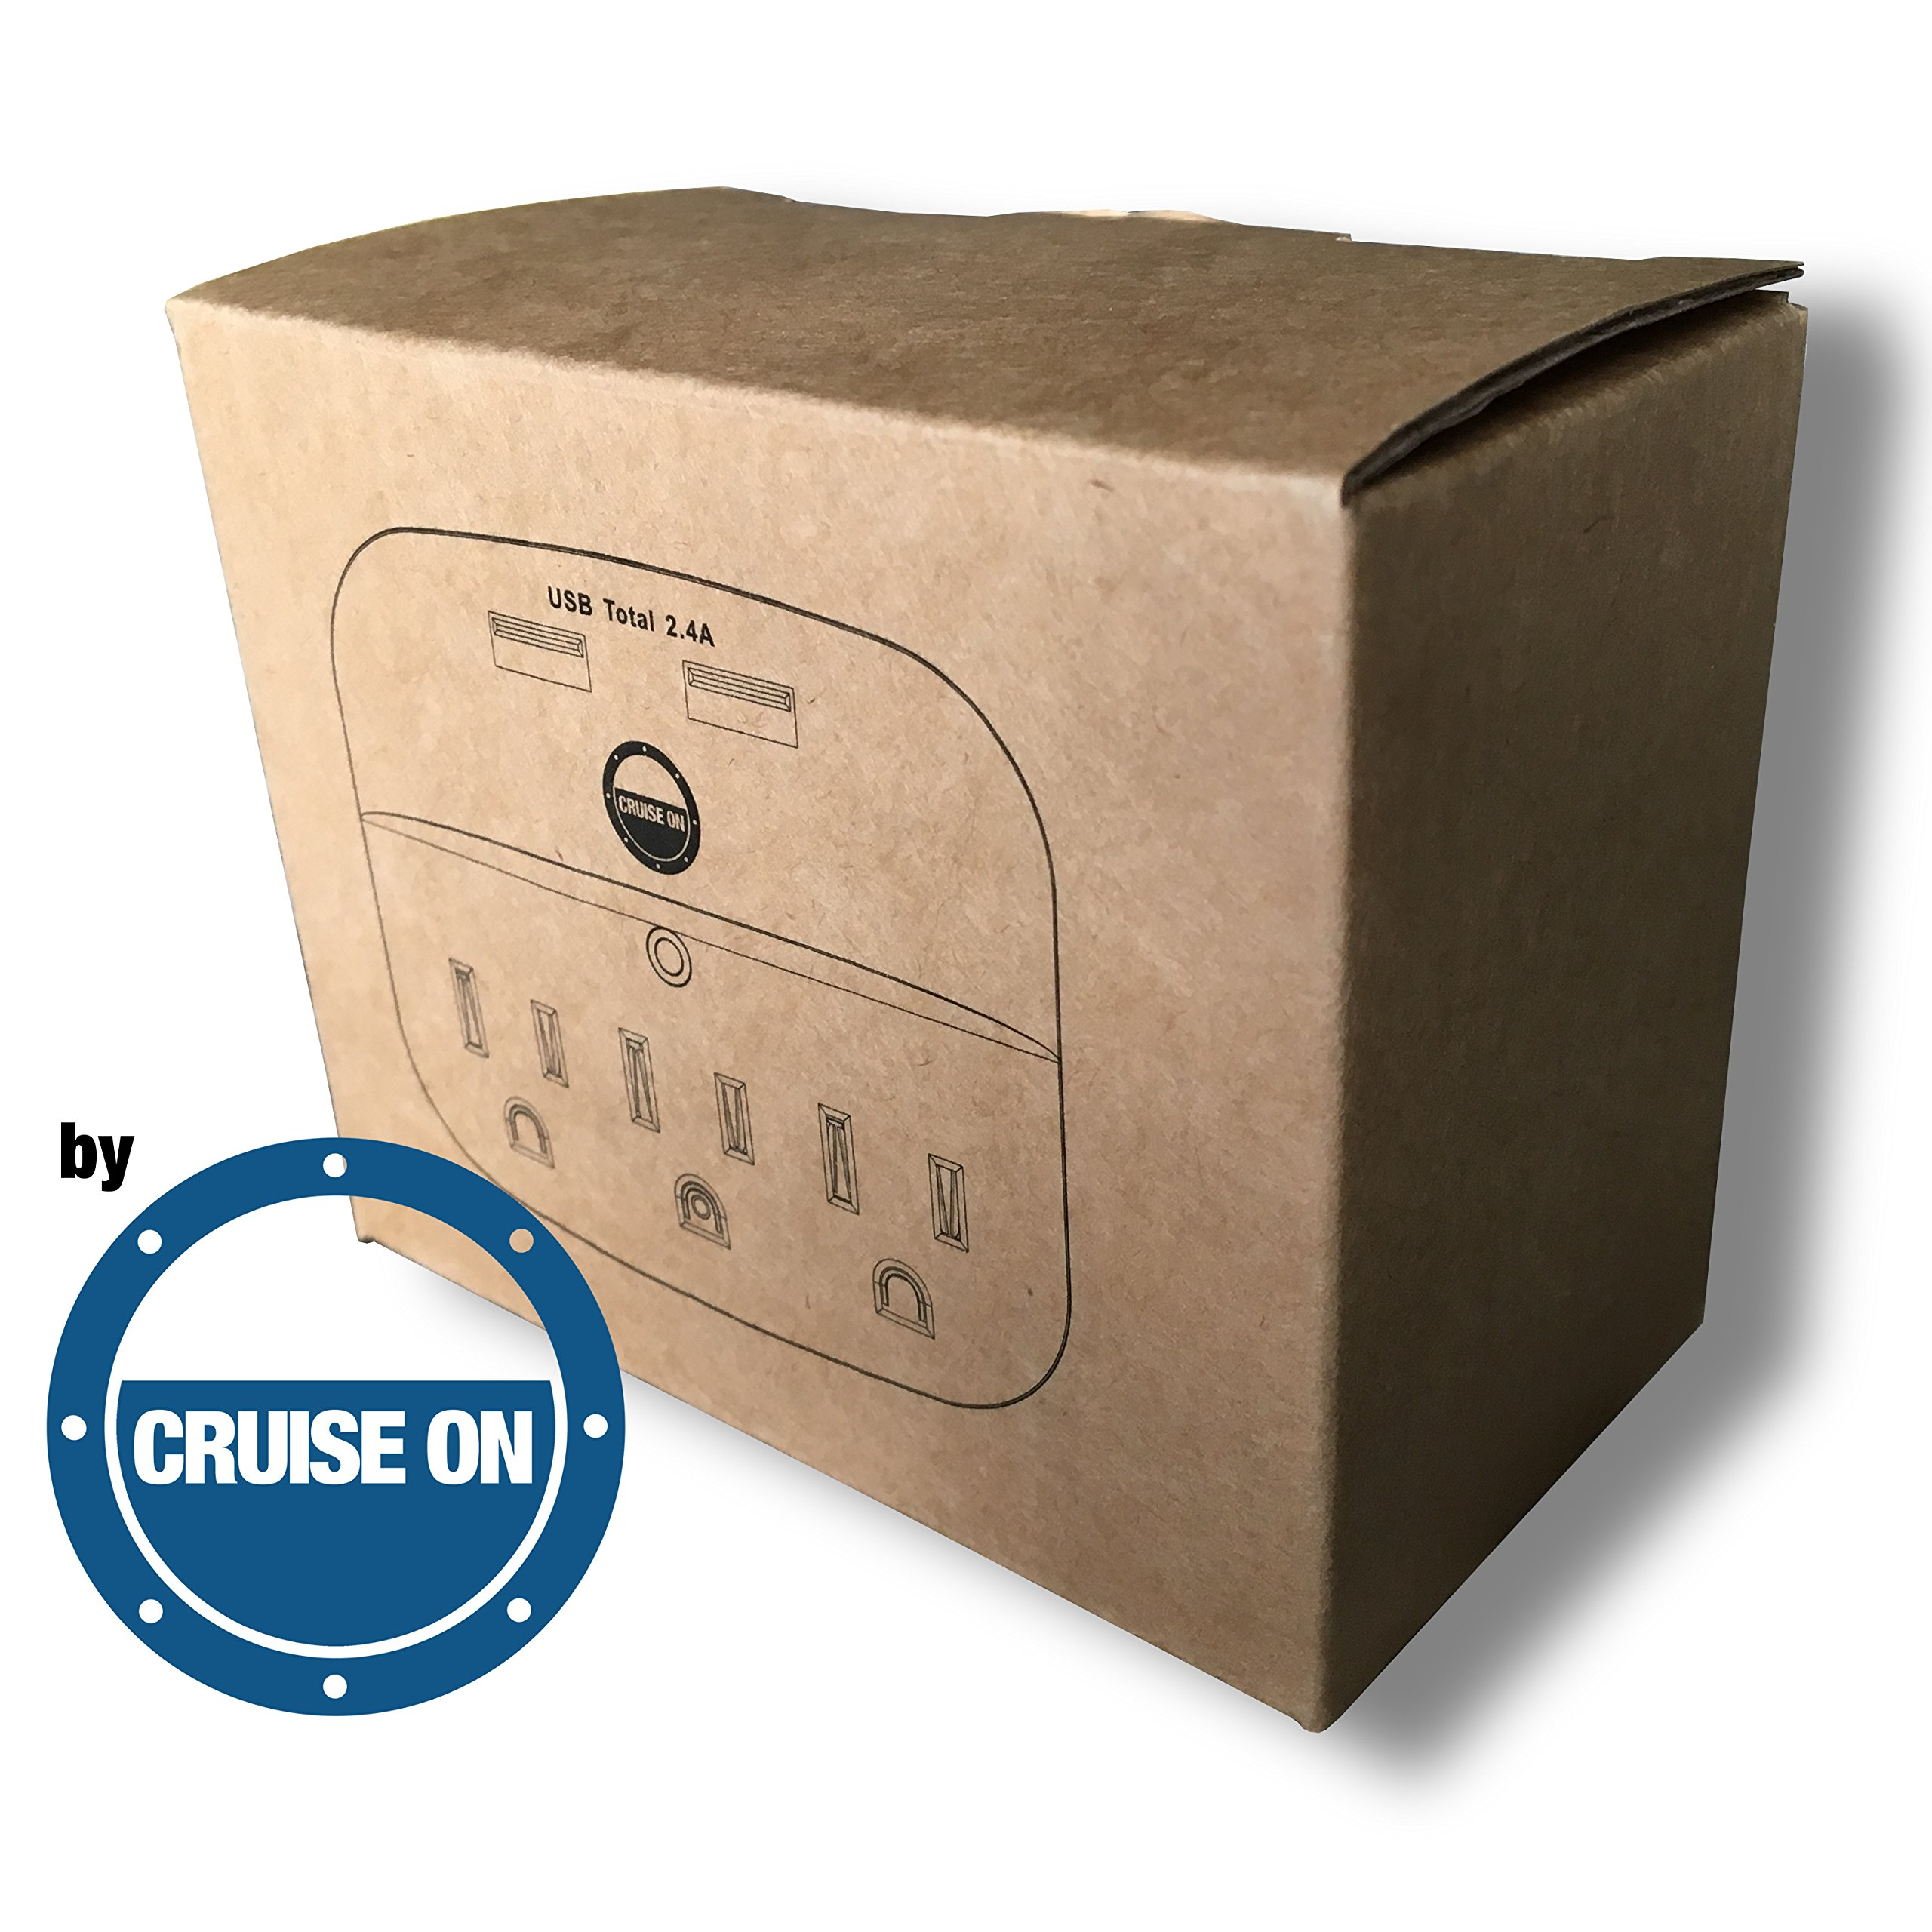 Cruise Power Strip with USB Outlets - Non Surge Protection - Cruise Ship Approved by Cruise On (Image #6)